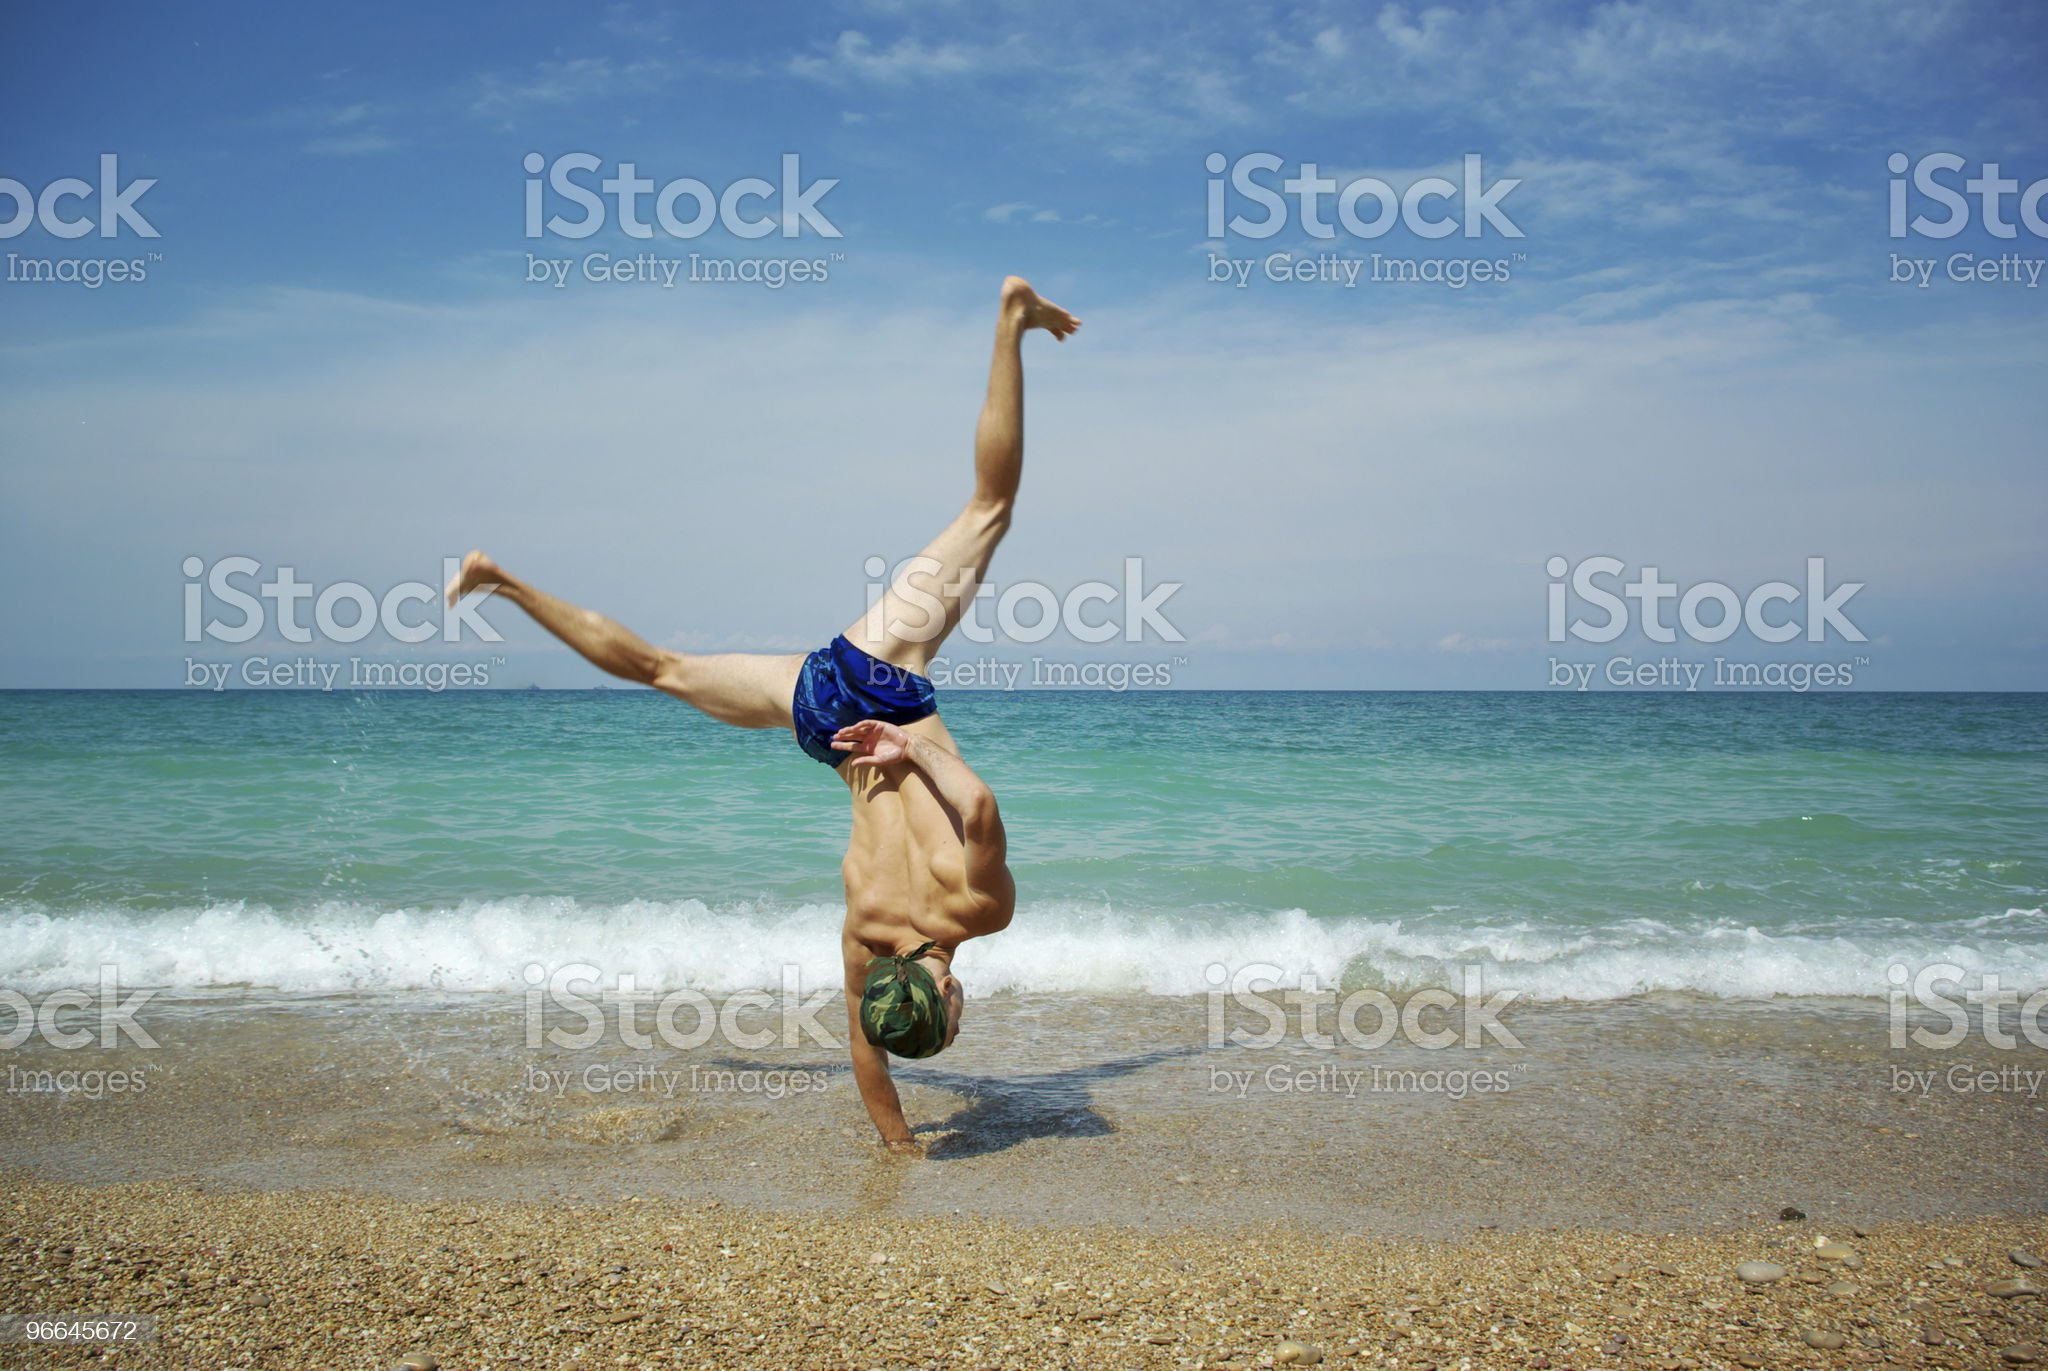 Stunt on beach royalty-free stock photo